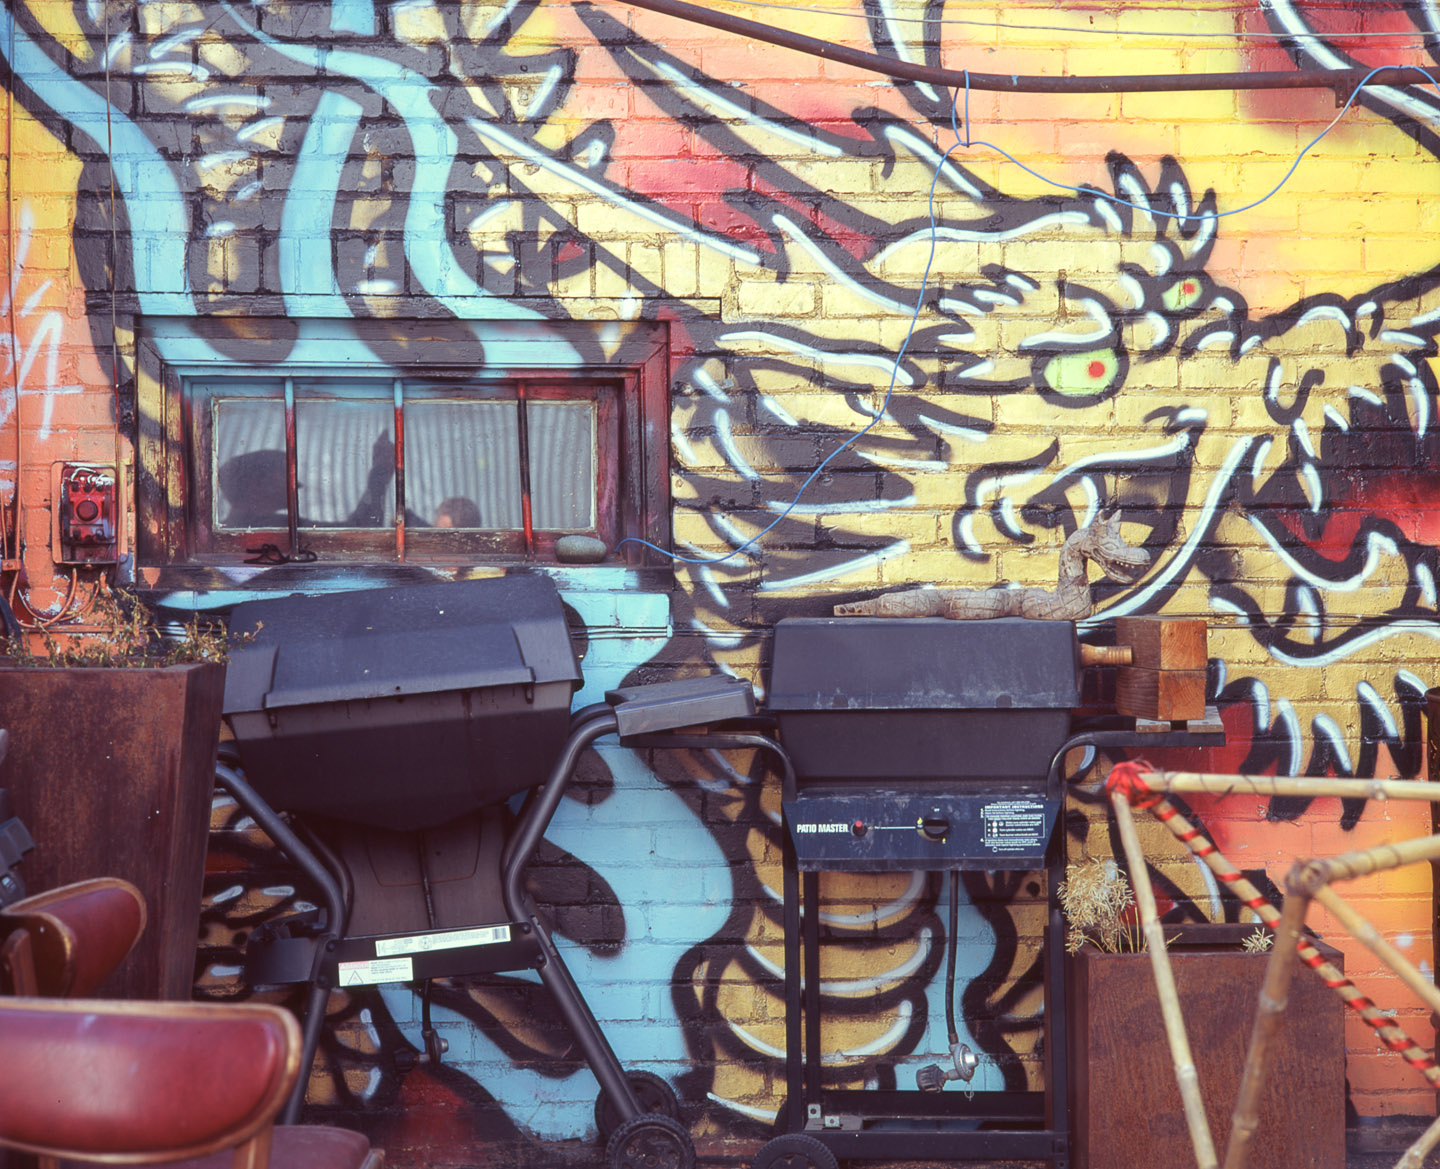 Graffiti and BBQ